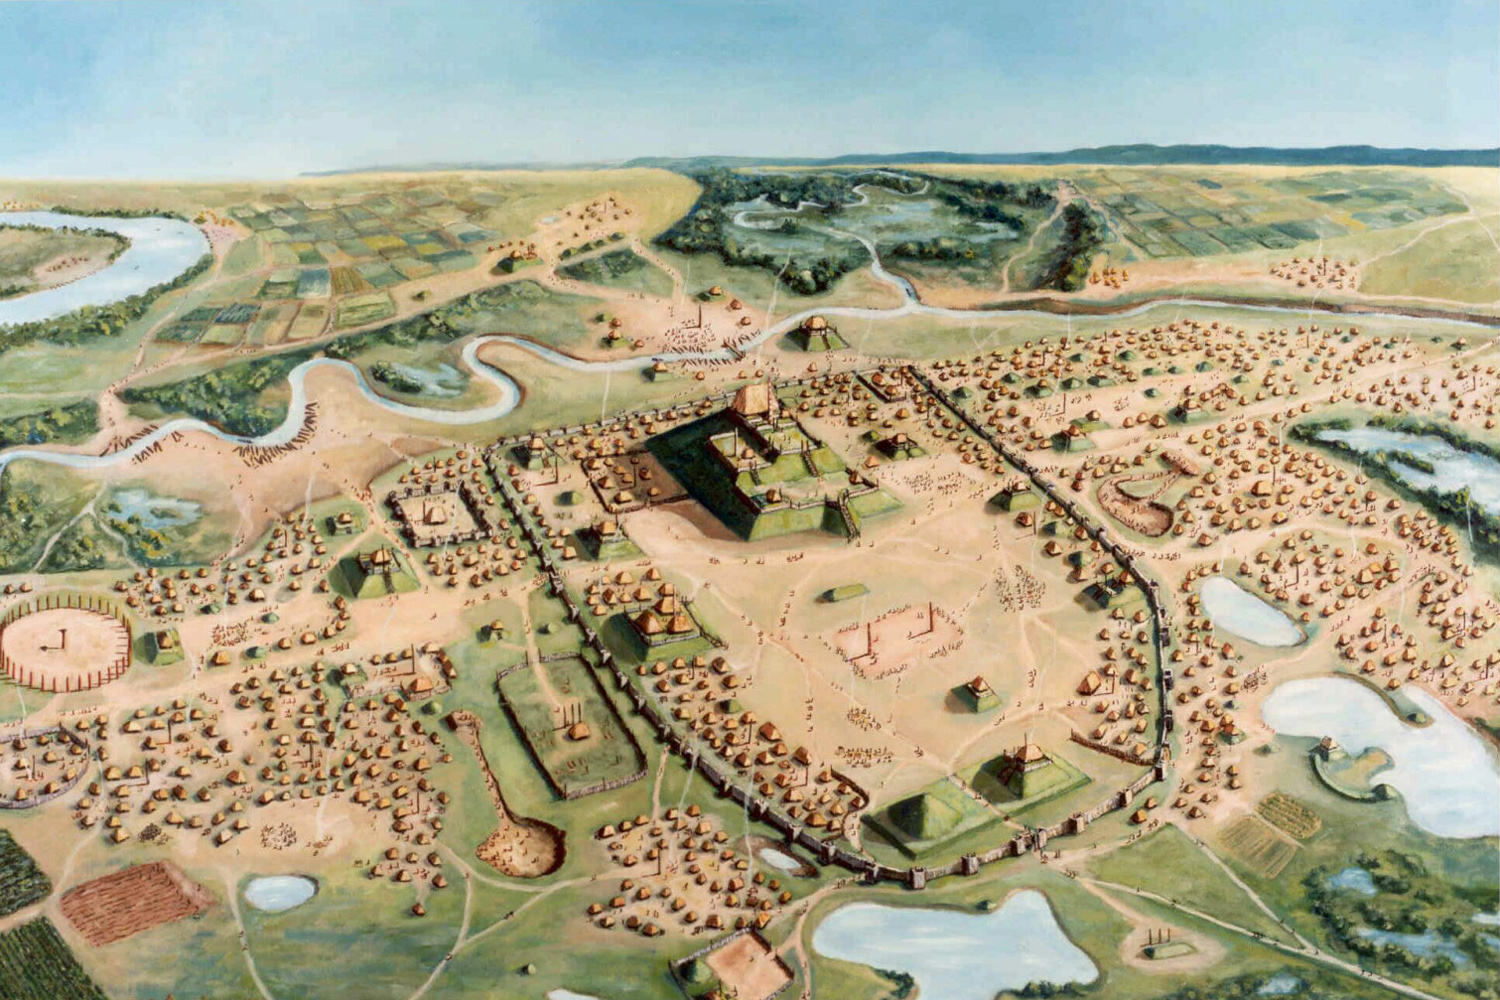 Cahokia, by Bill Iseminger. Cahokia Mounds State Historic Site